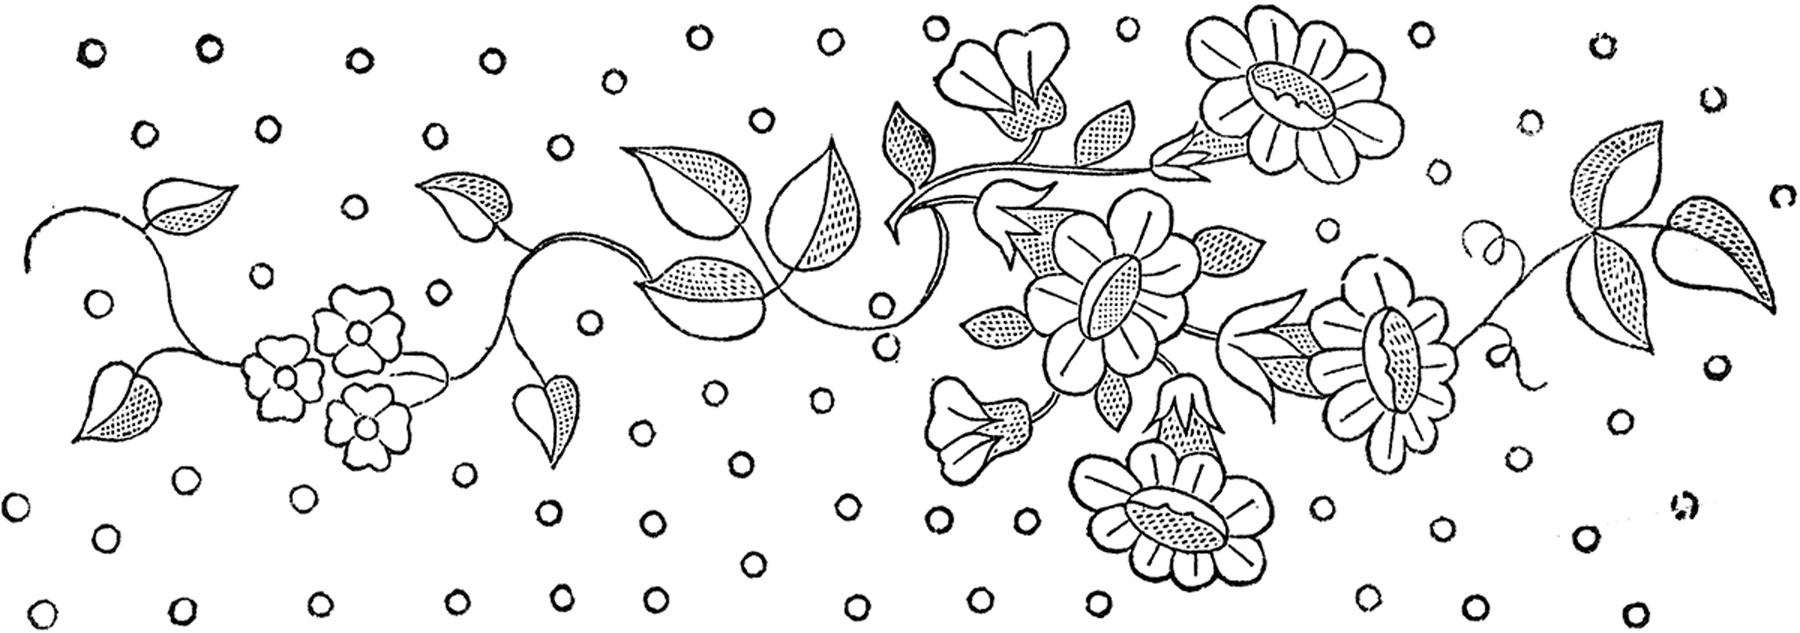 Embroidery Designs Patterns Floral Embroidery Patterns Pretty The Graphics Fairy